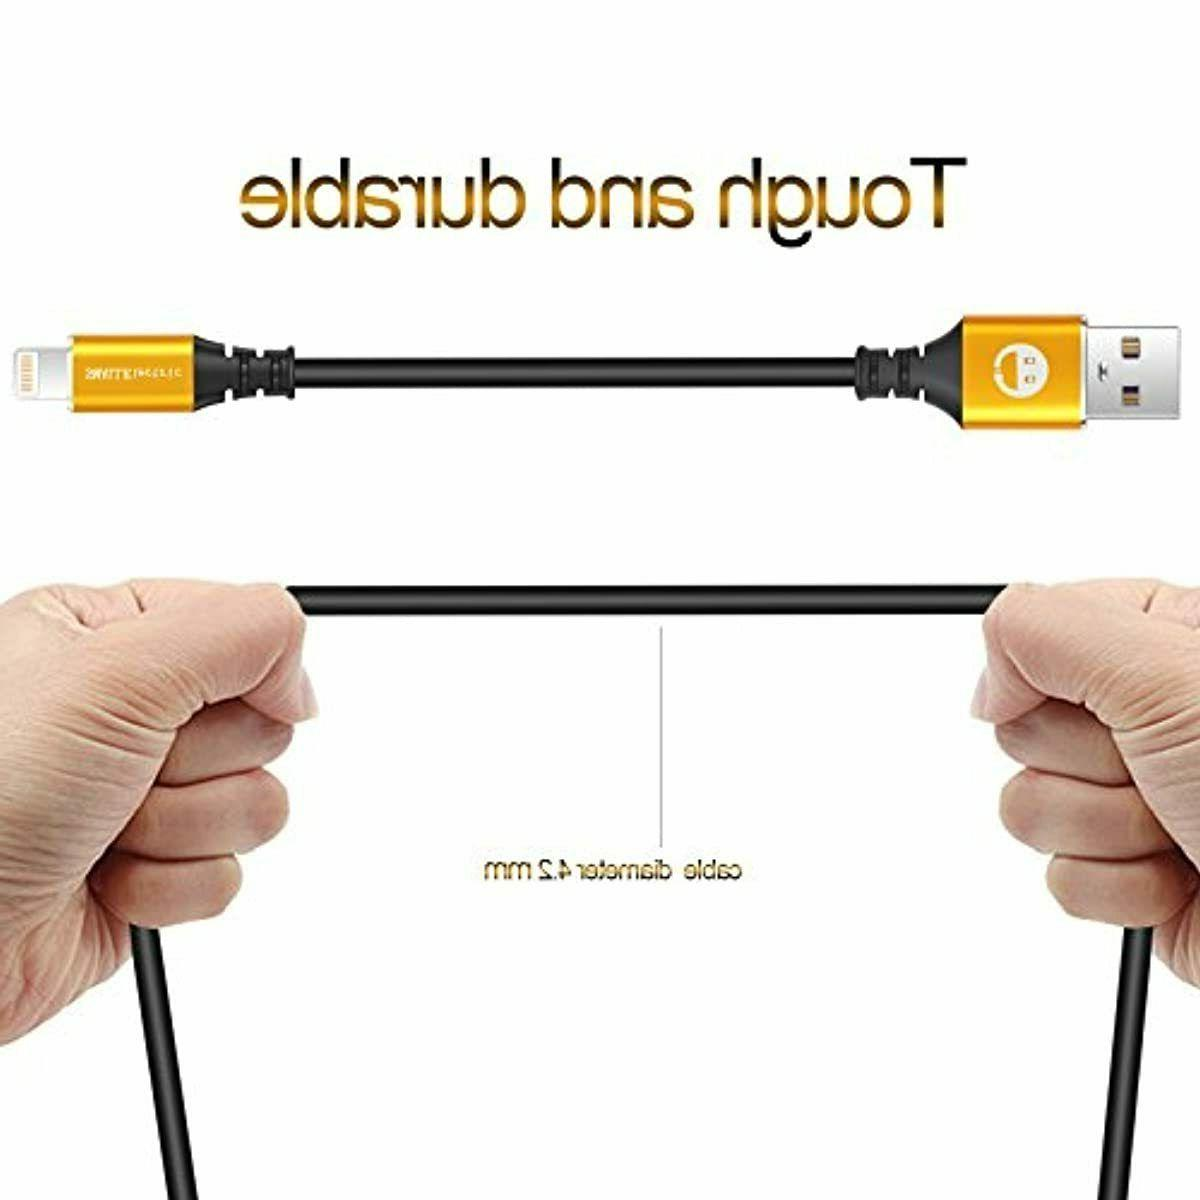 SMALLElectric Cables Short 5Pack, USB